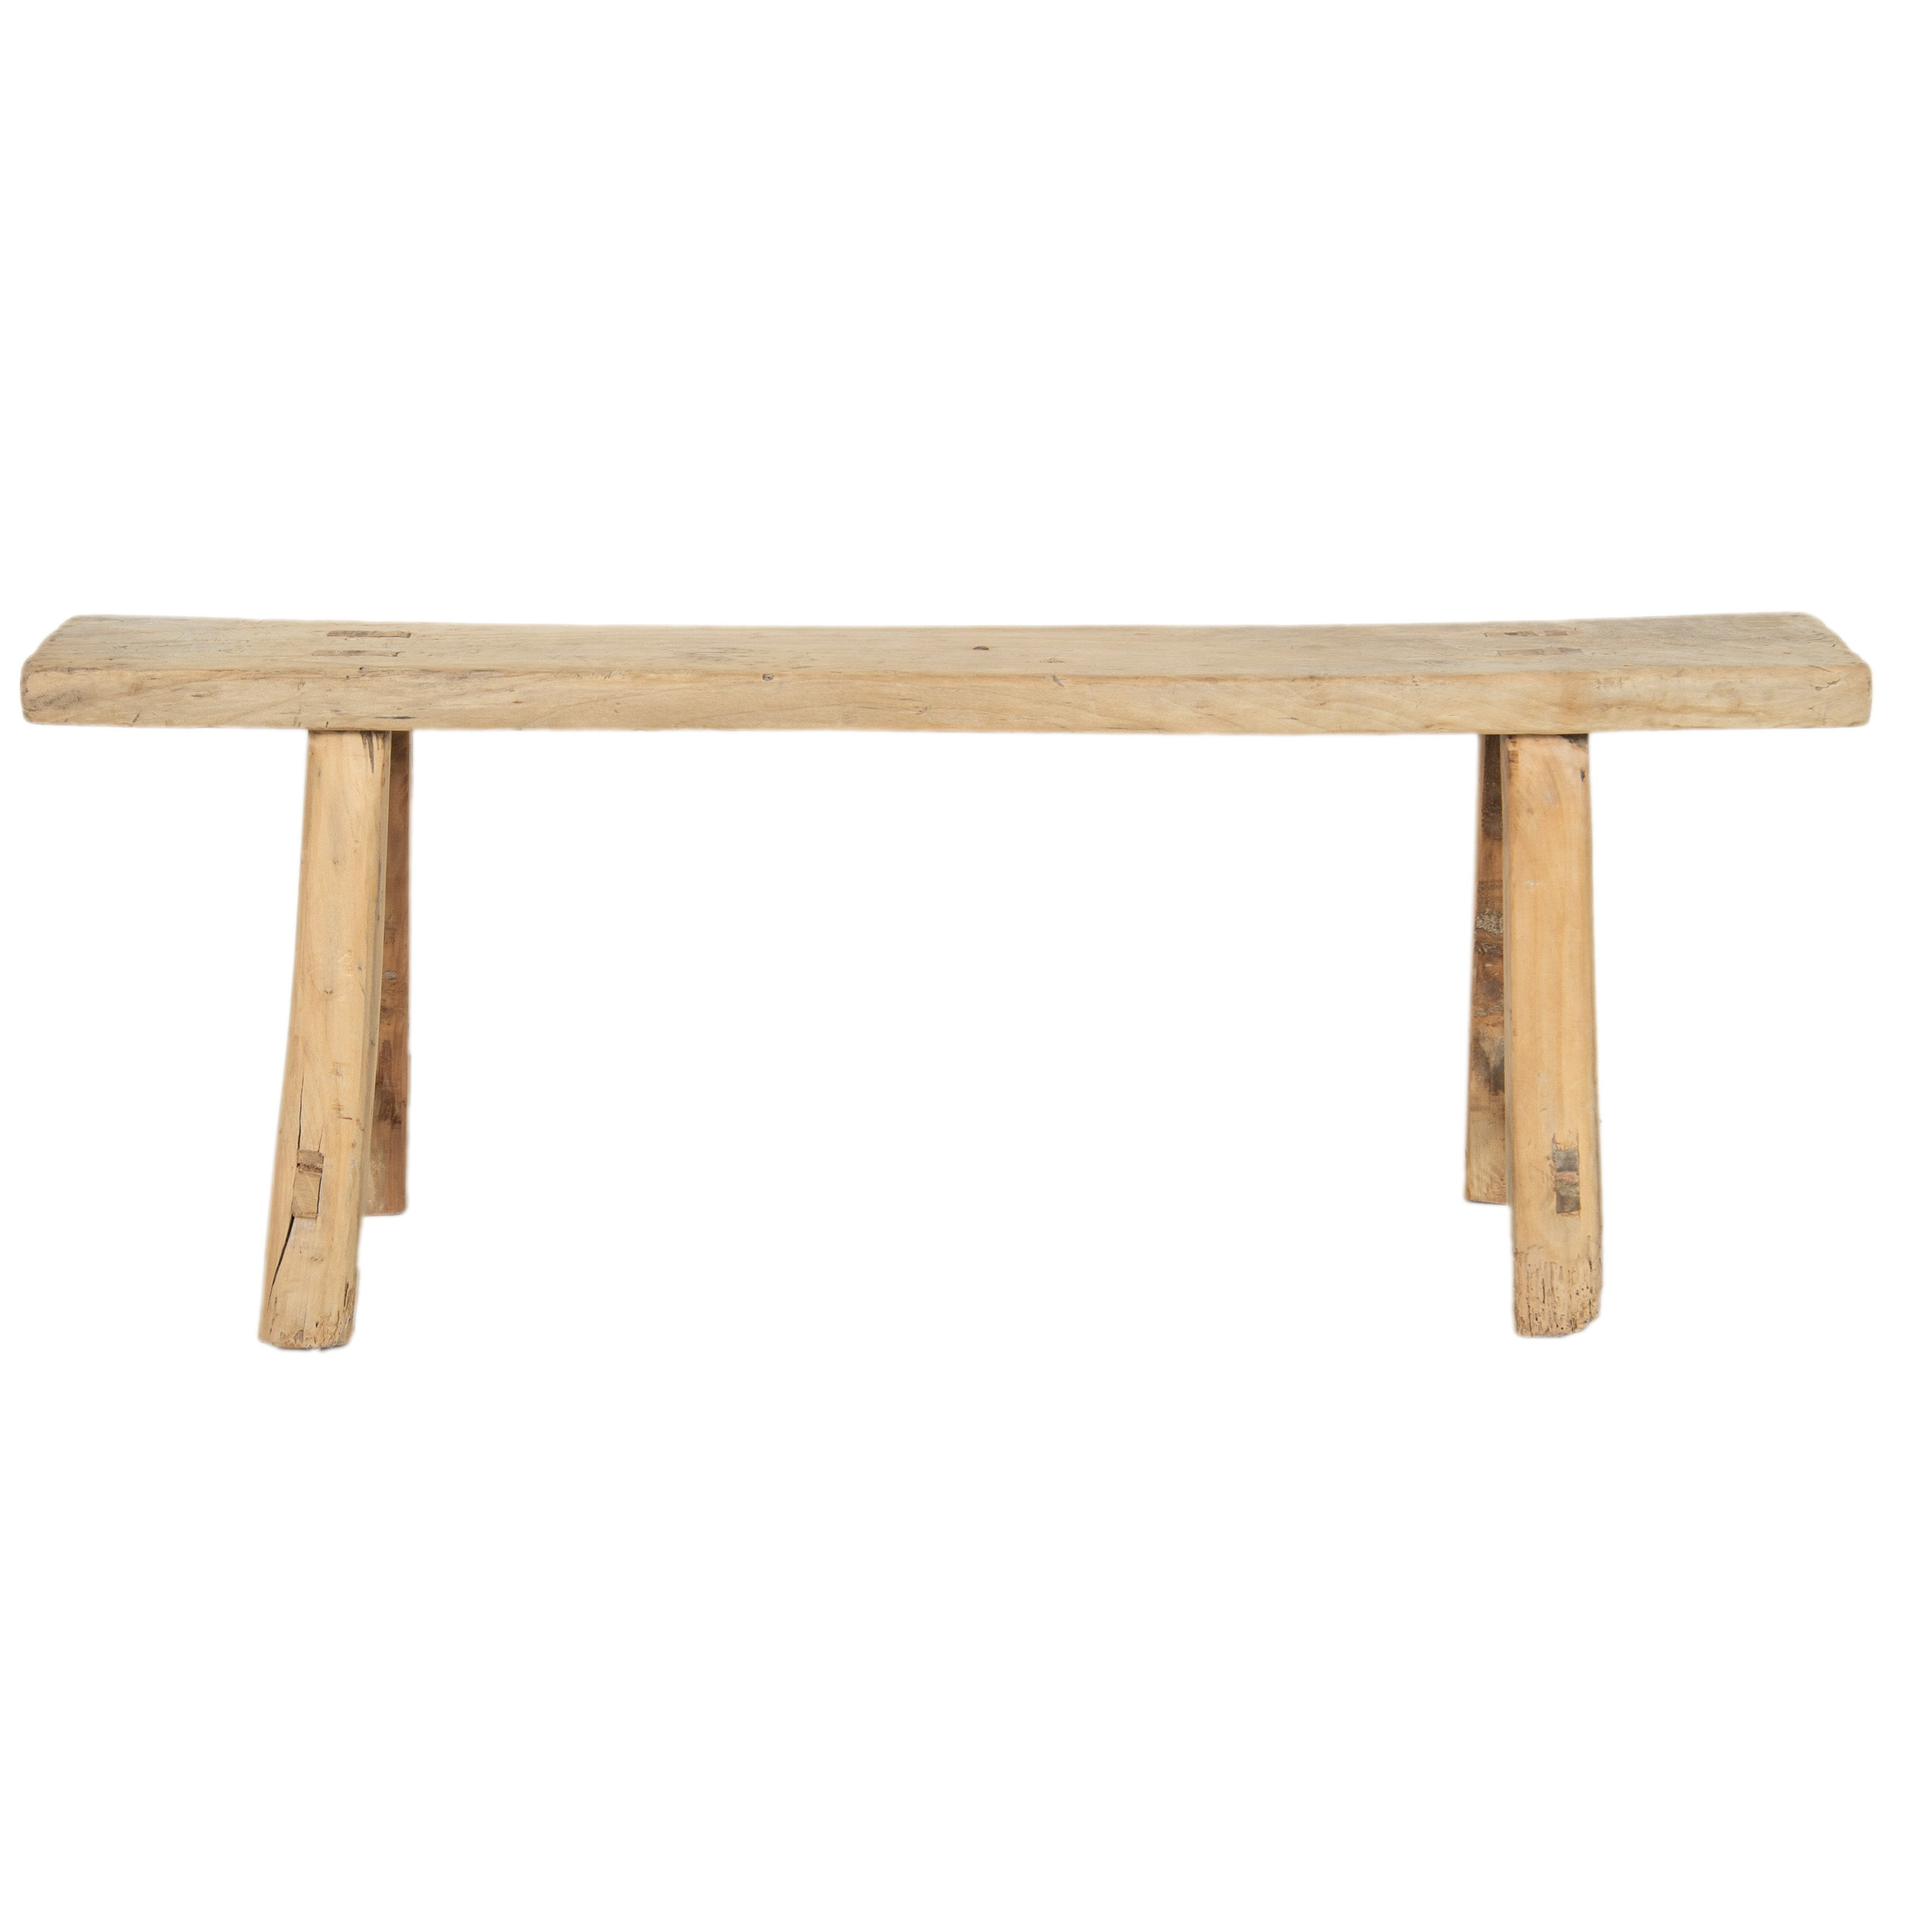 Mullens Bench #5